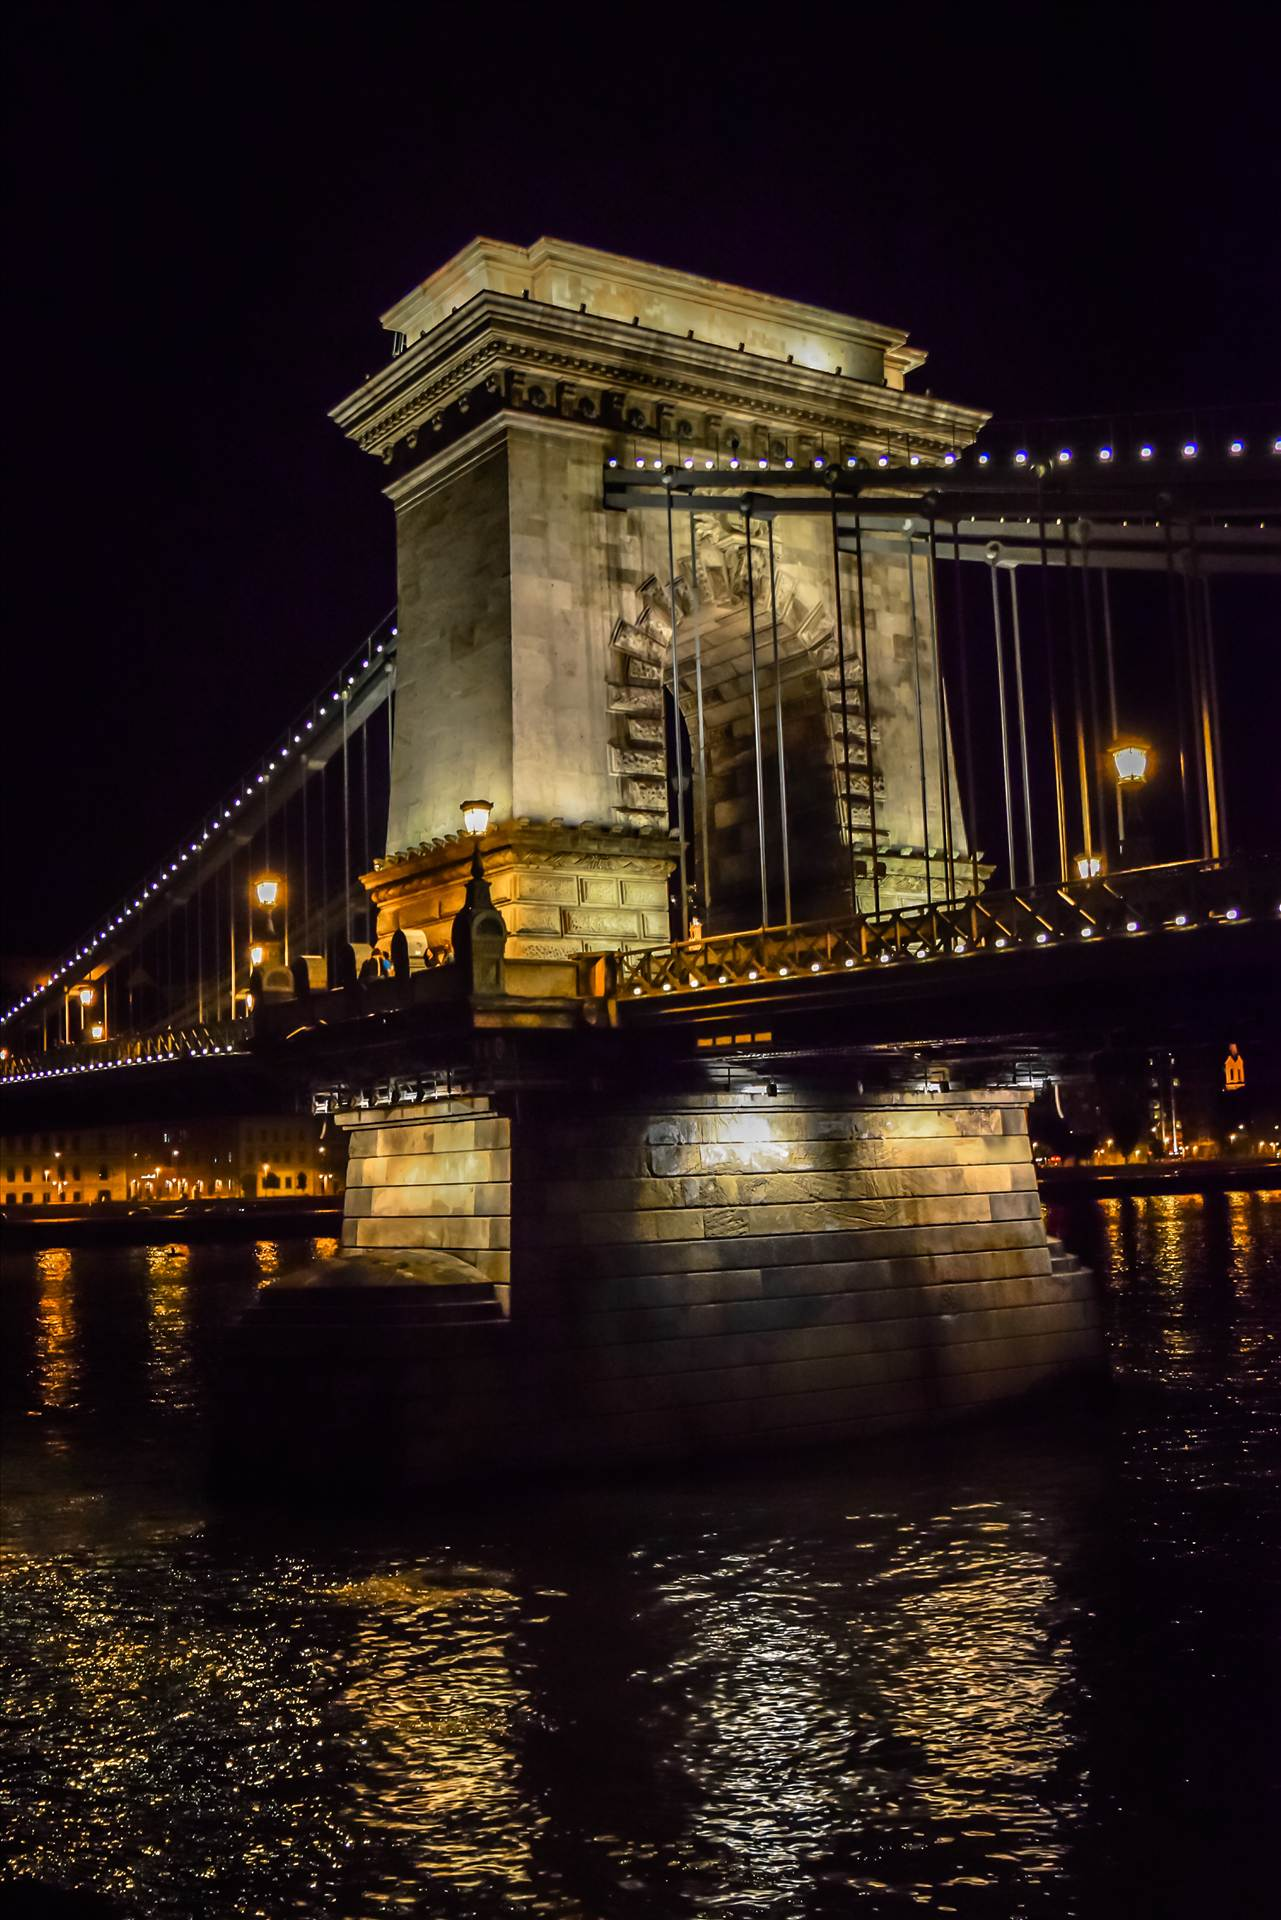 _DSC0236.jpg - Budapest Bridge at night. by Dennis Rose